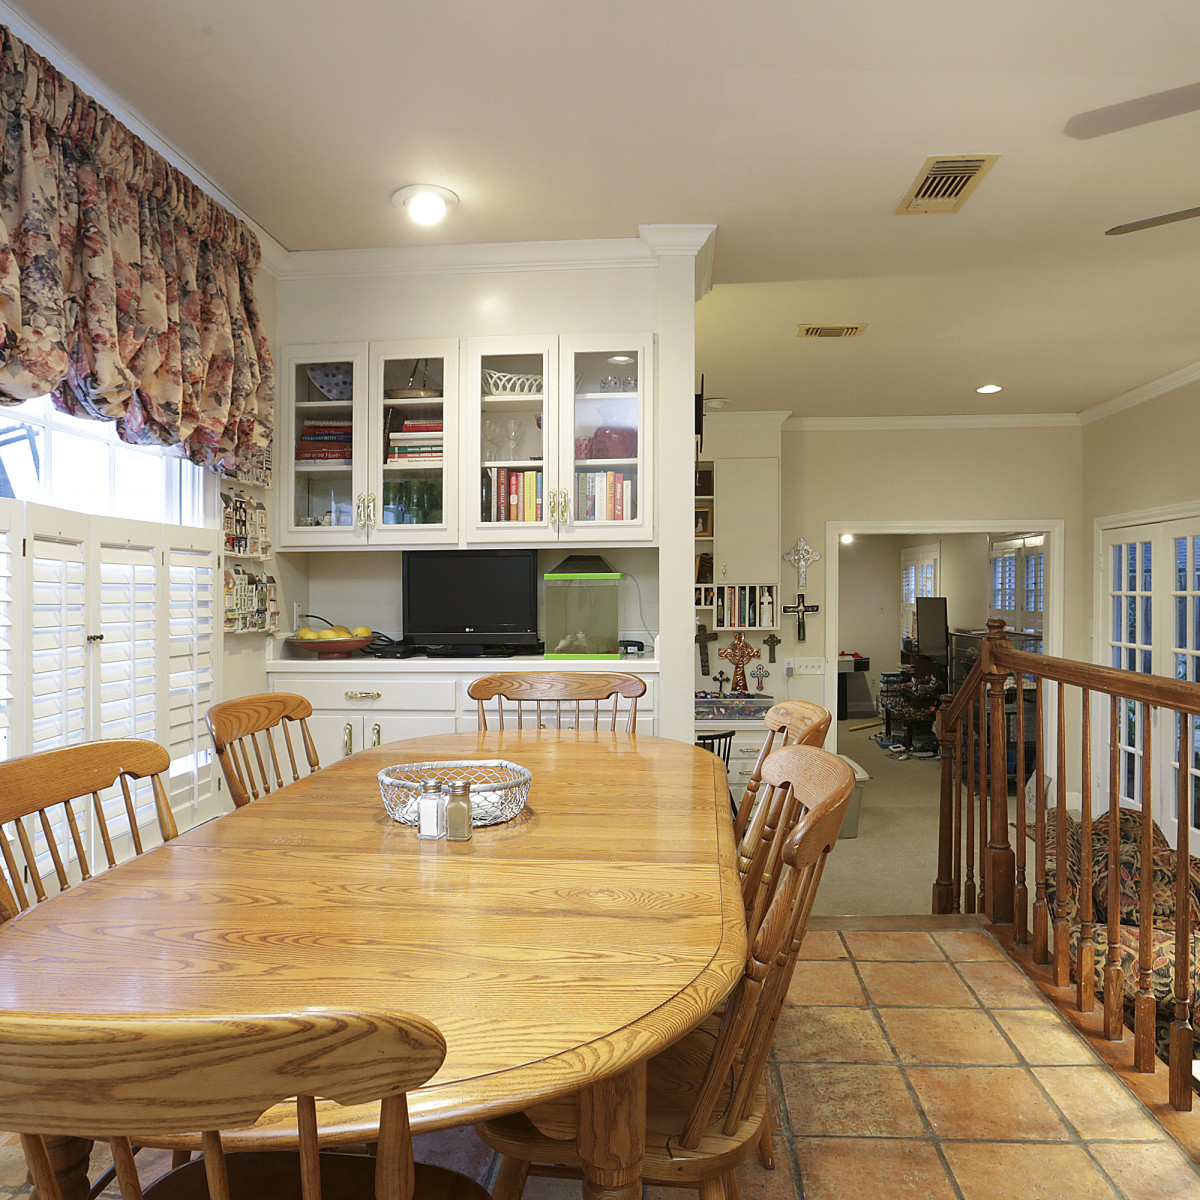 2424 Locke Lane in Houston house for sale breakfast nook